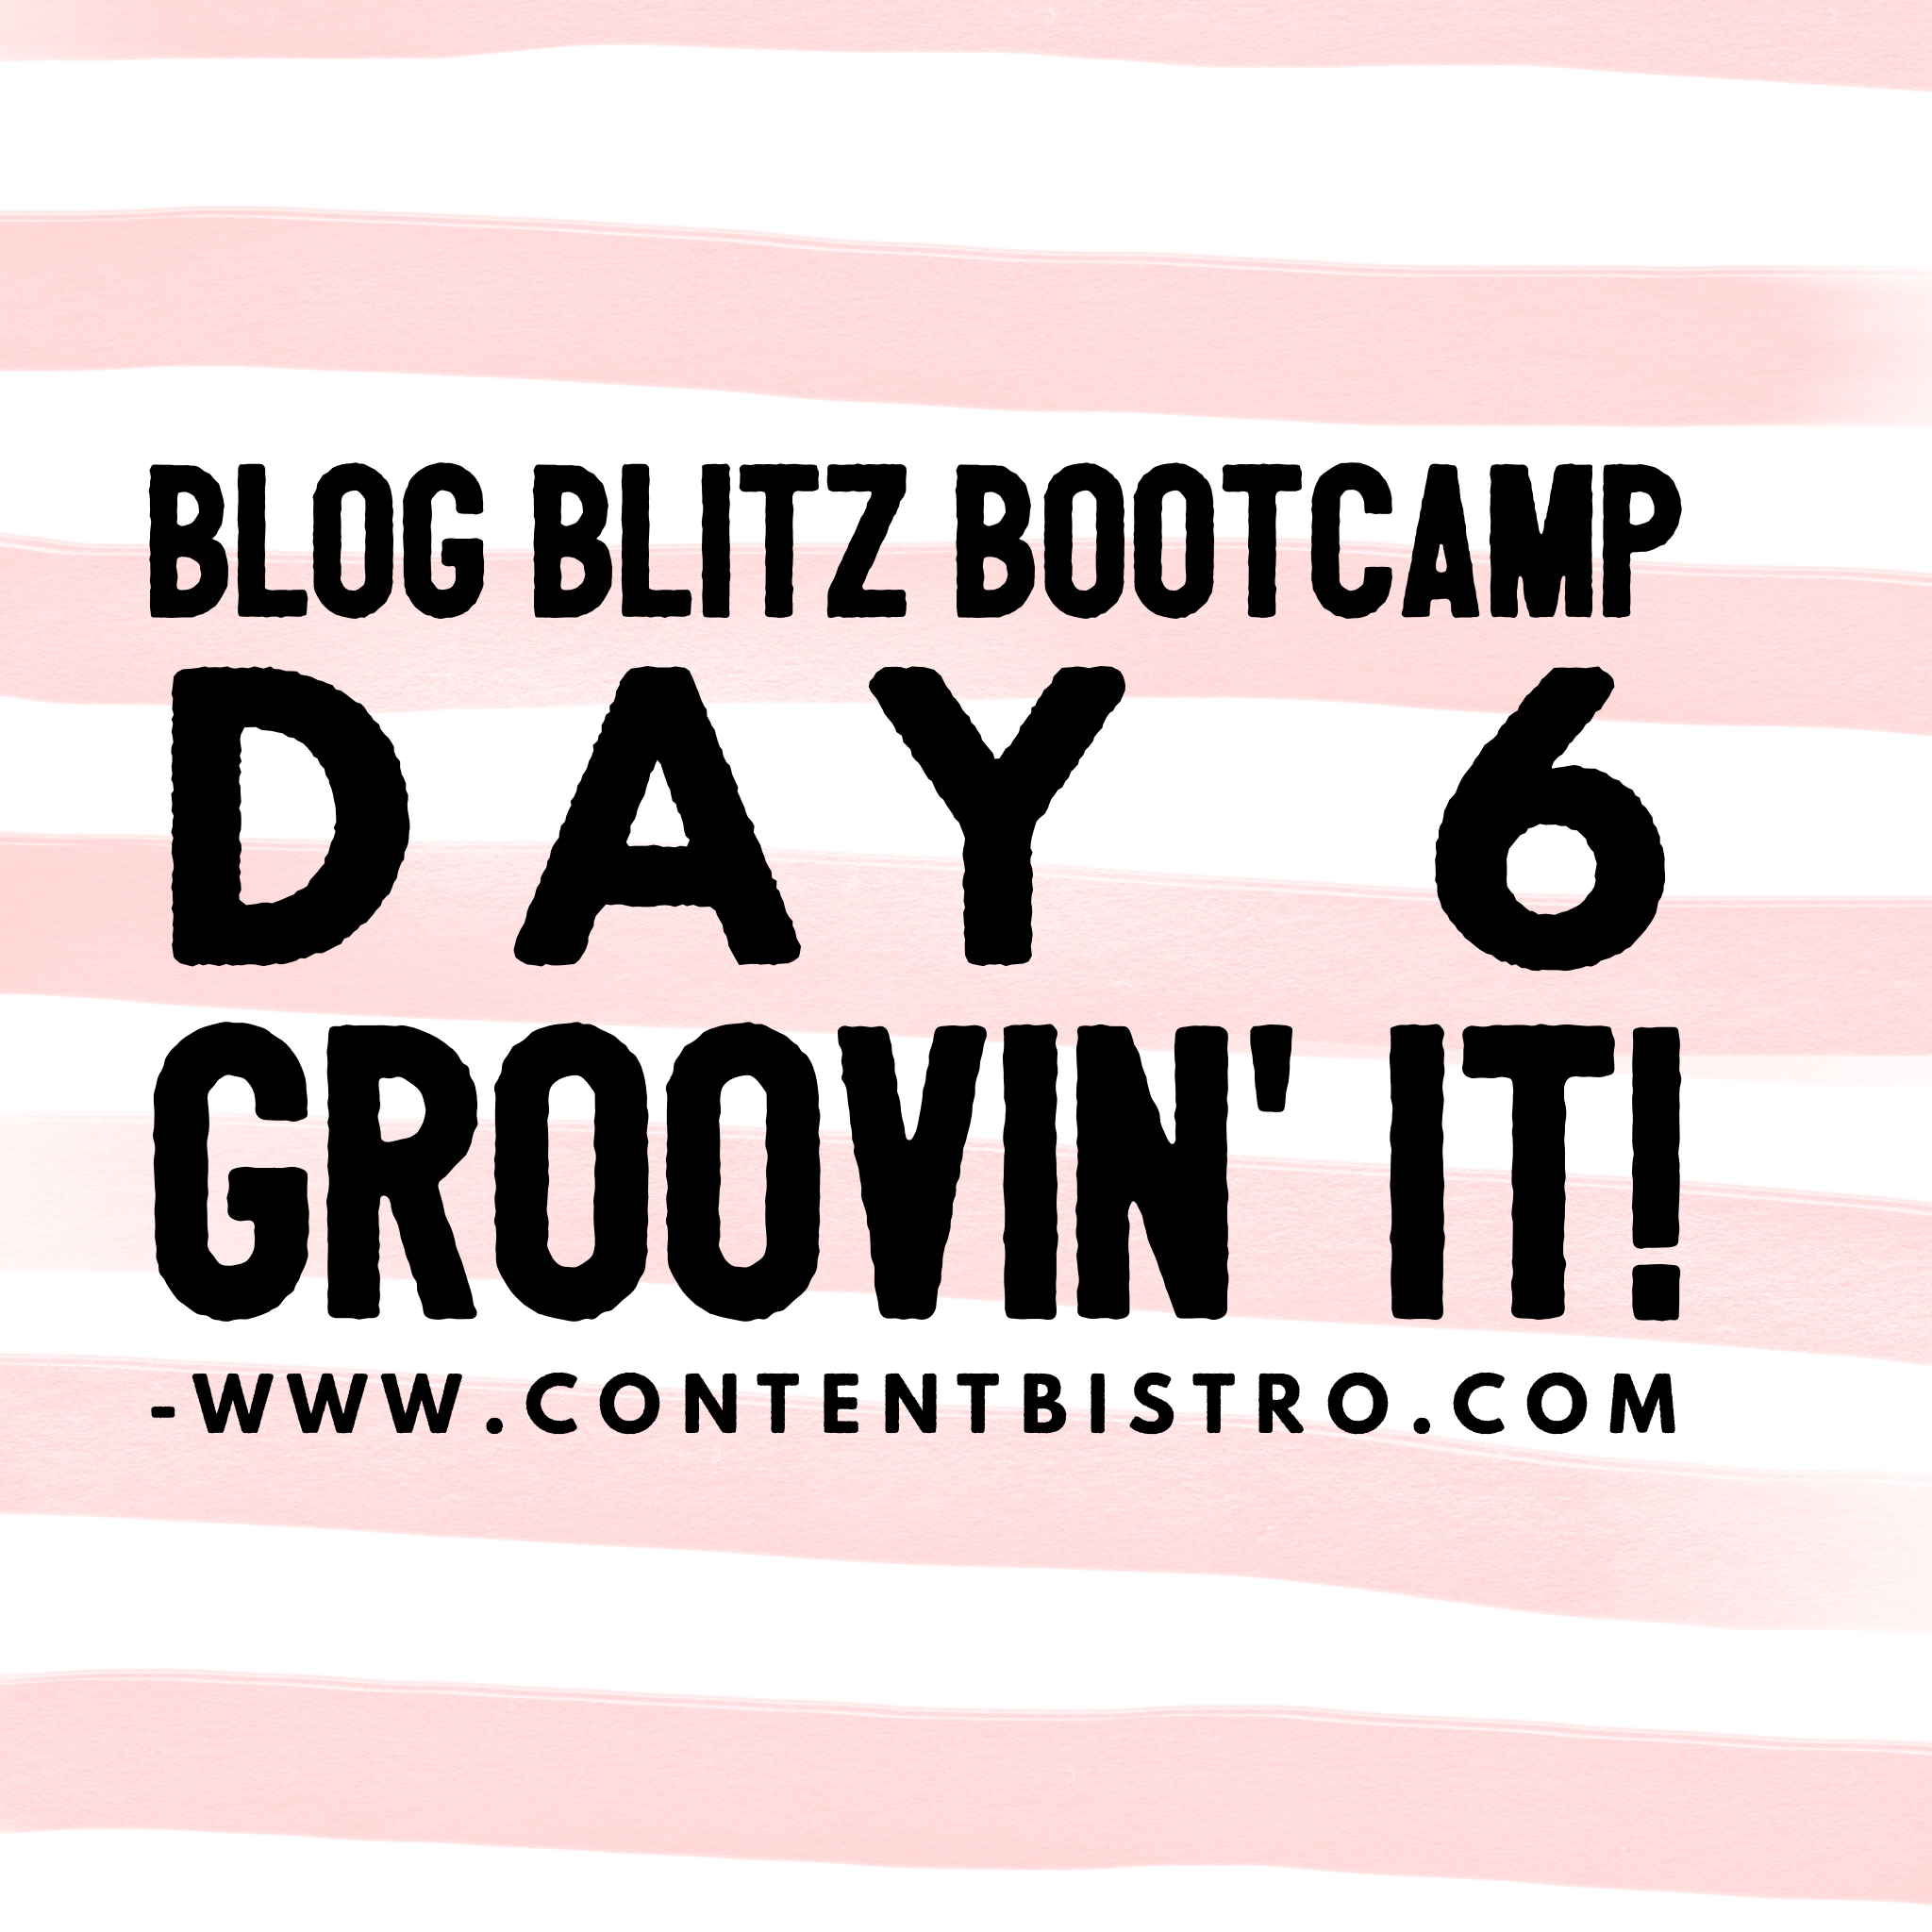 blog-blitz-bootcamp-day-6-how-to-grow-blog-traffic